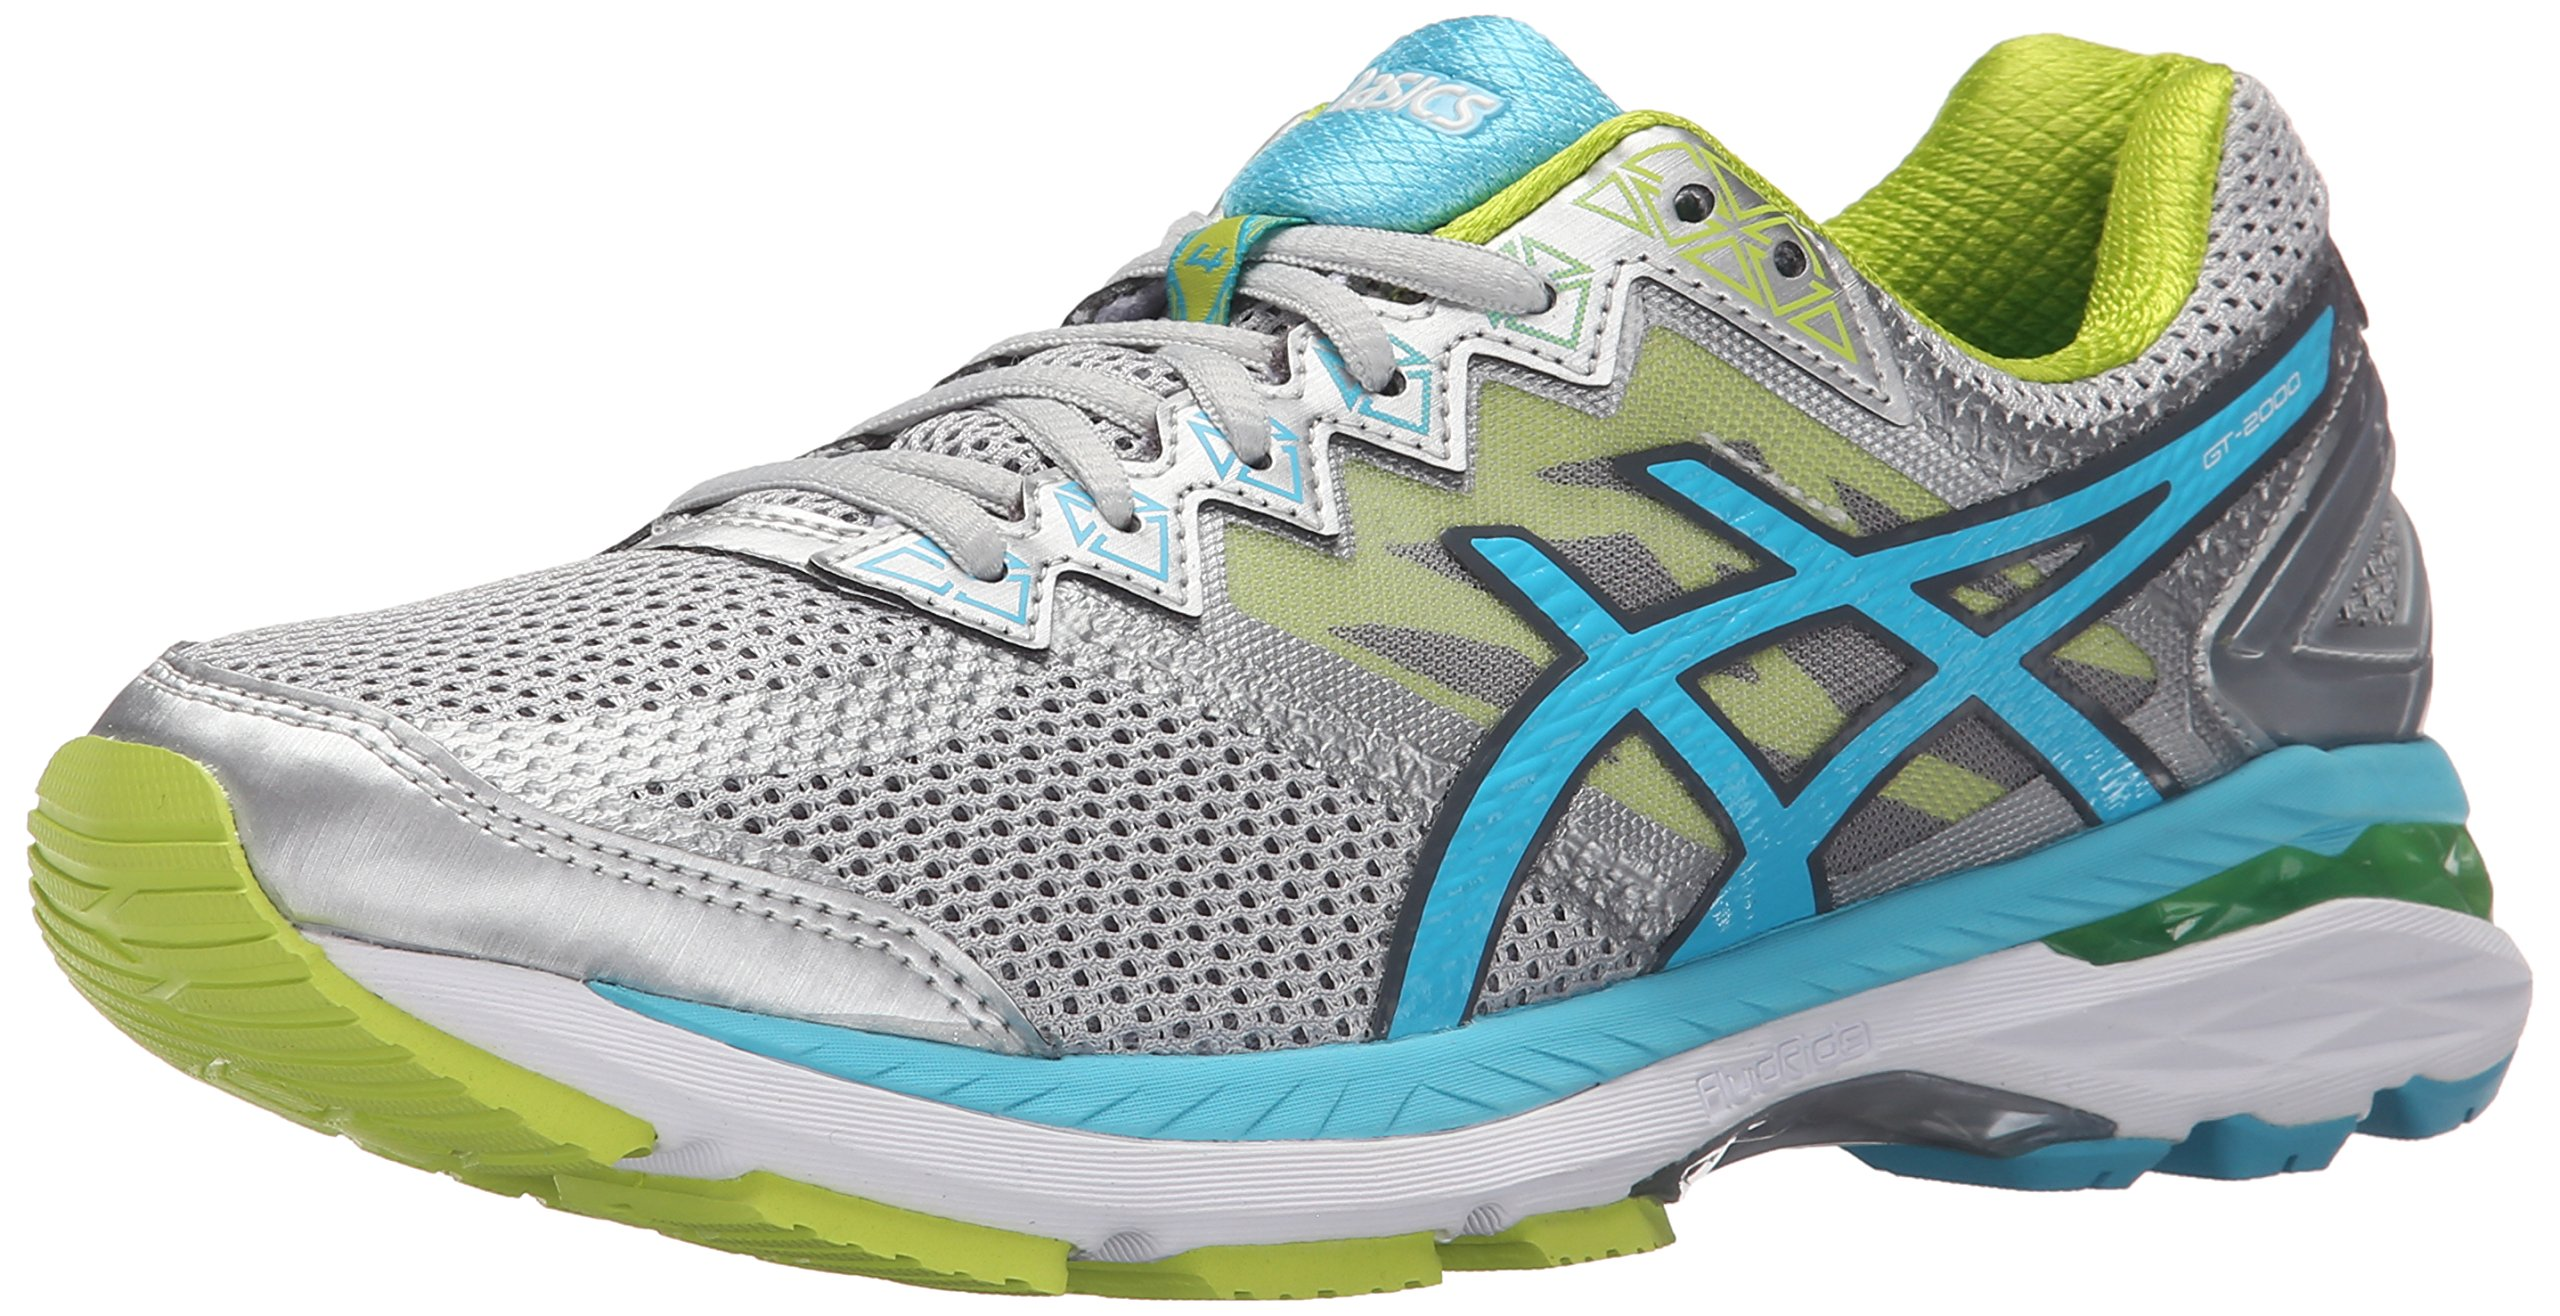 ASICS Women's GT-2000 4 Running Shoe, Silver/Turquoise/Lime Punch, 5 2A US